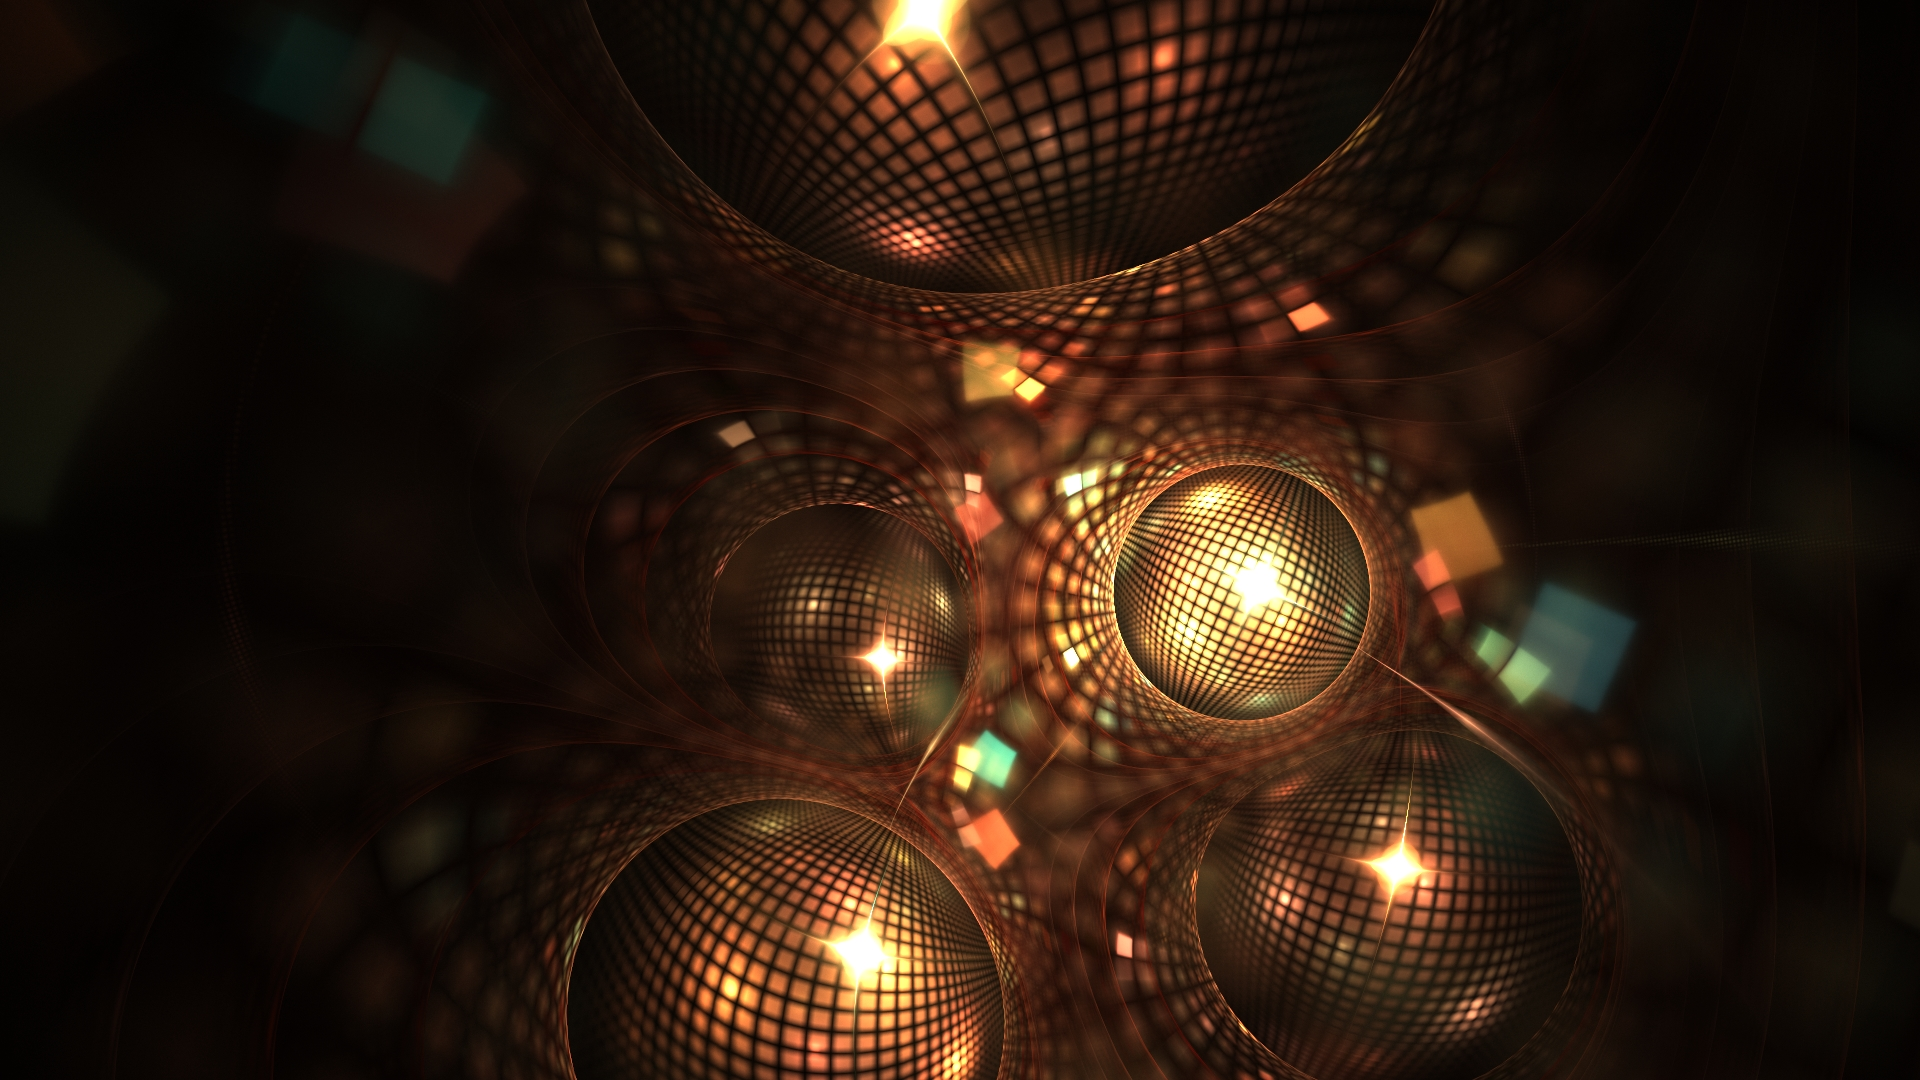 disco hd wallpapers - photo #10